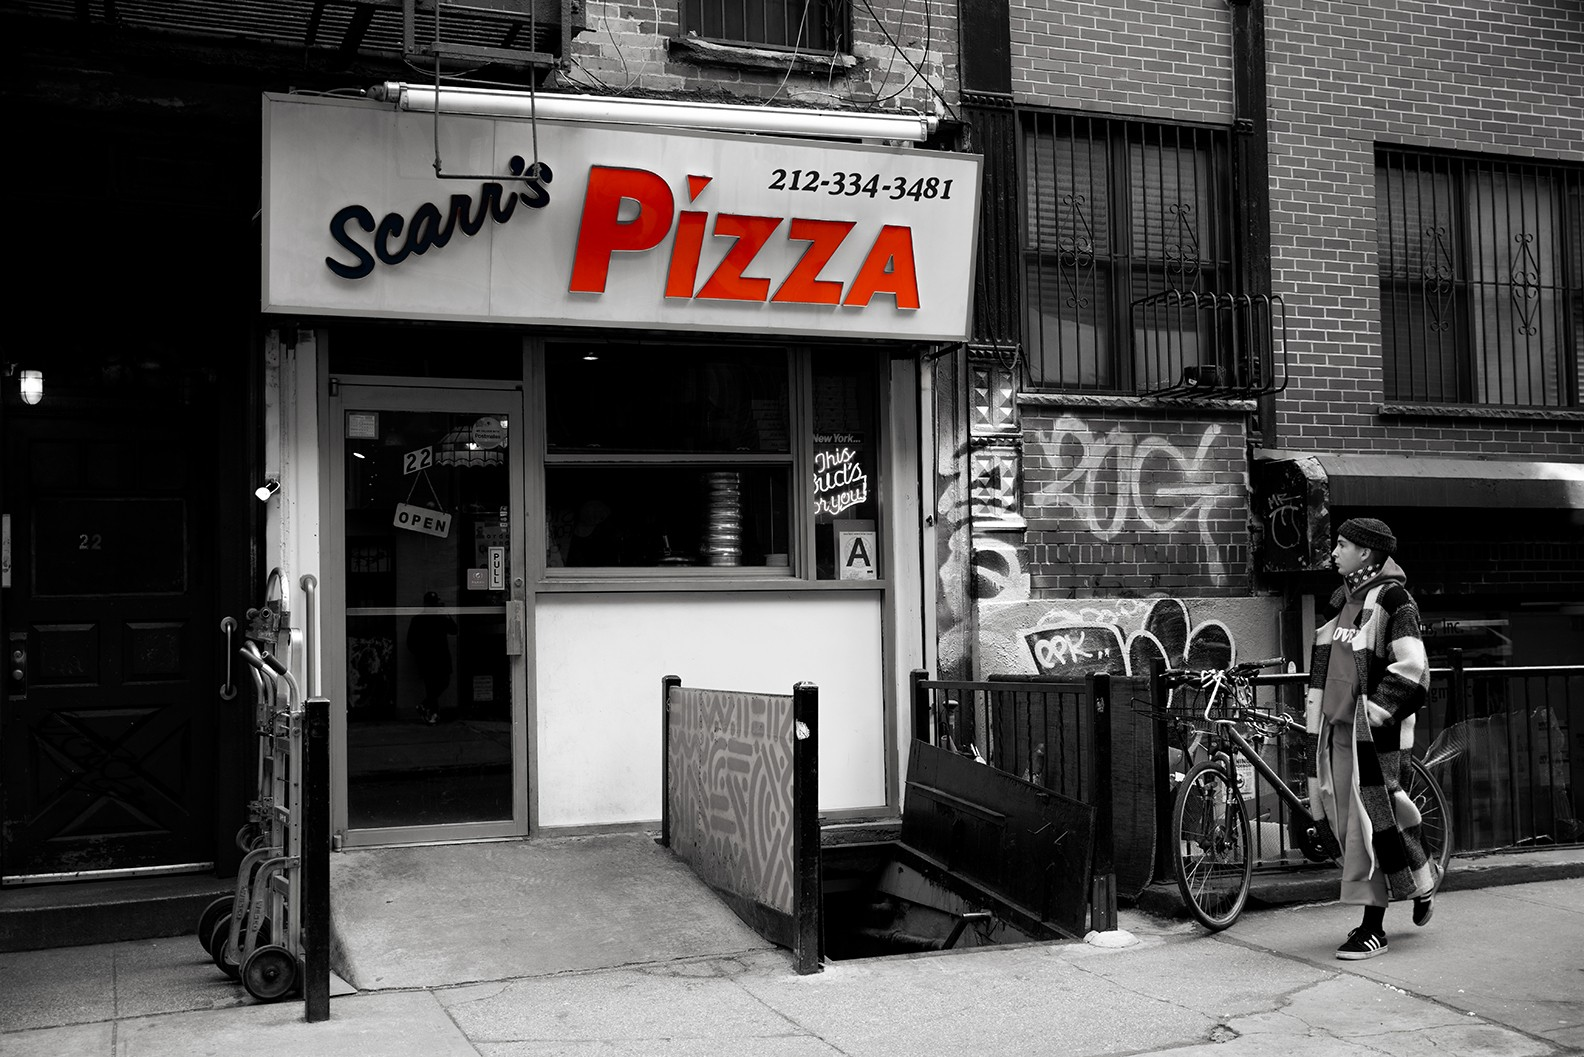 Exterior image of Scarr's Pizza on the Lower East Side